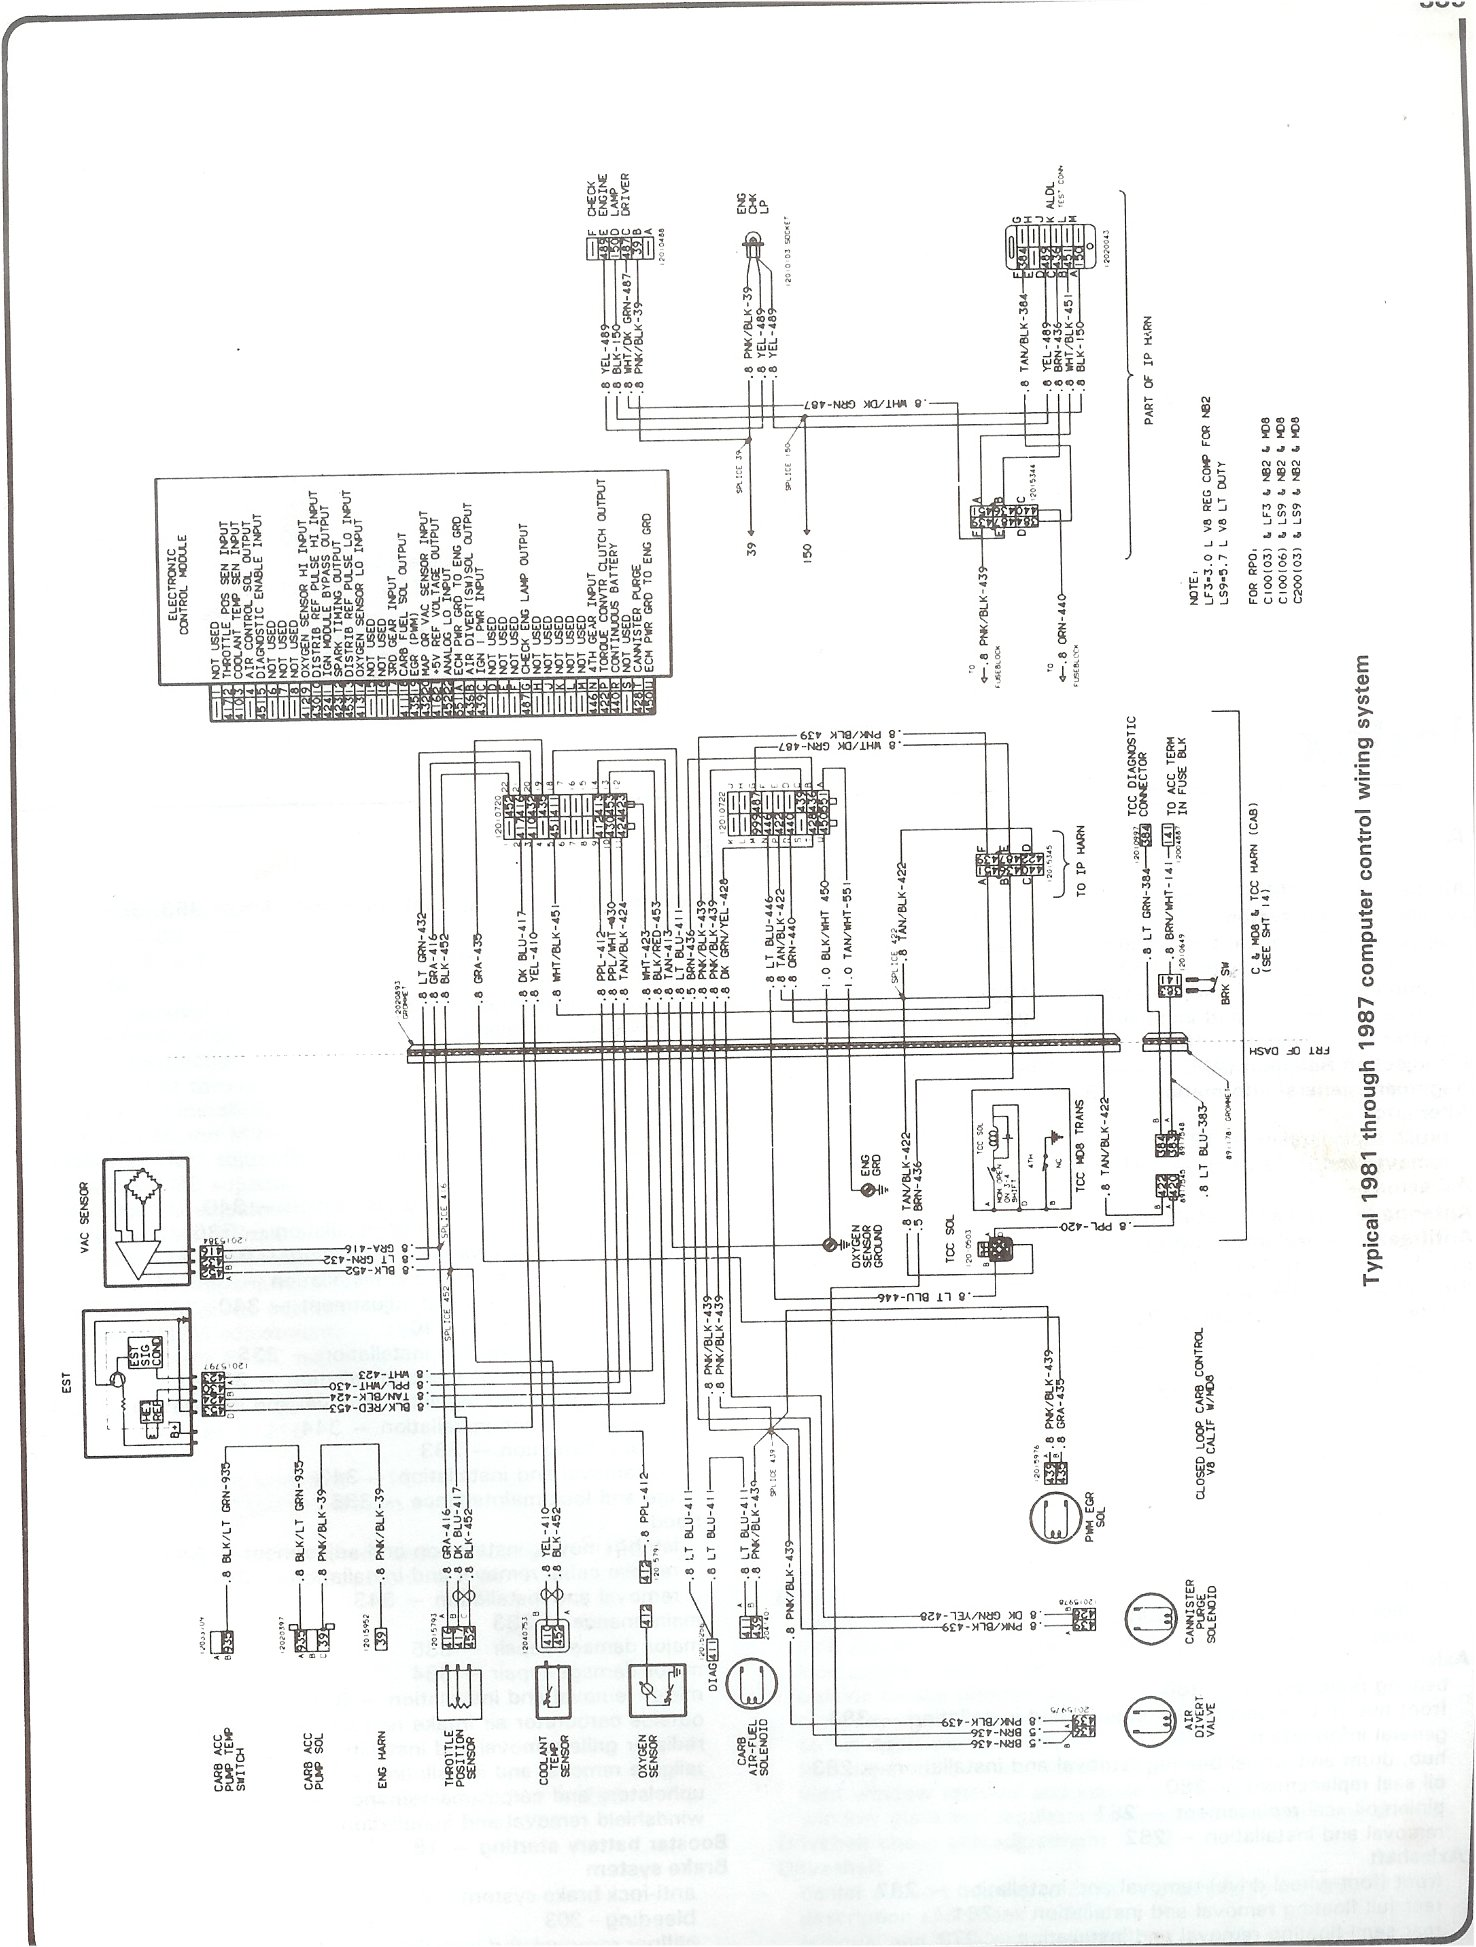 81 87_computer_control_wiring complete 73 87 wiring diagrams 1985 chevy truck power window wire diagram at eliteediting.co